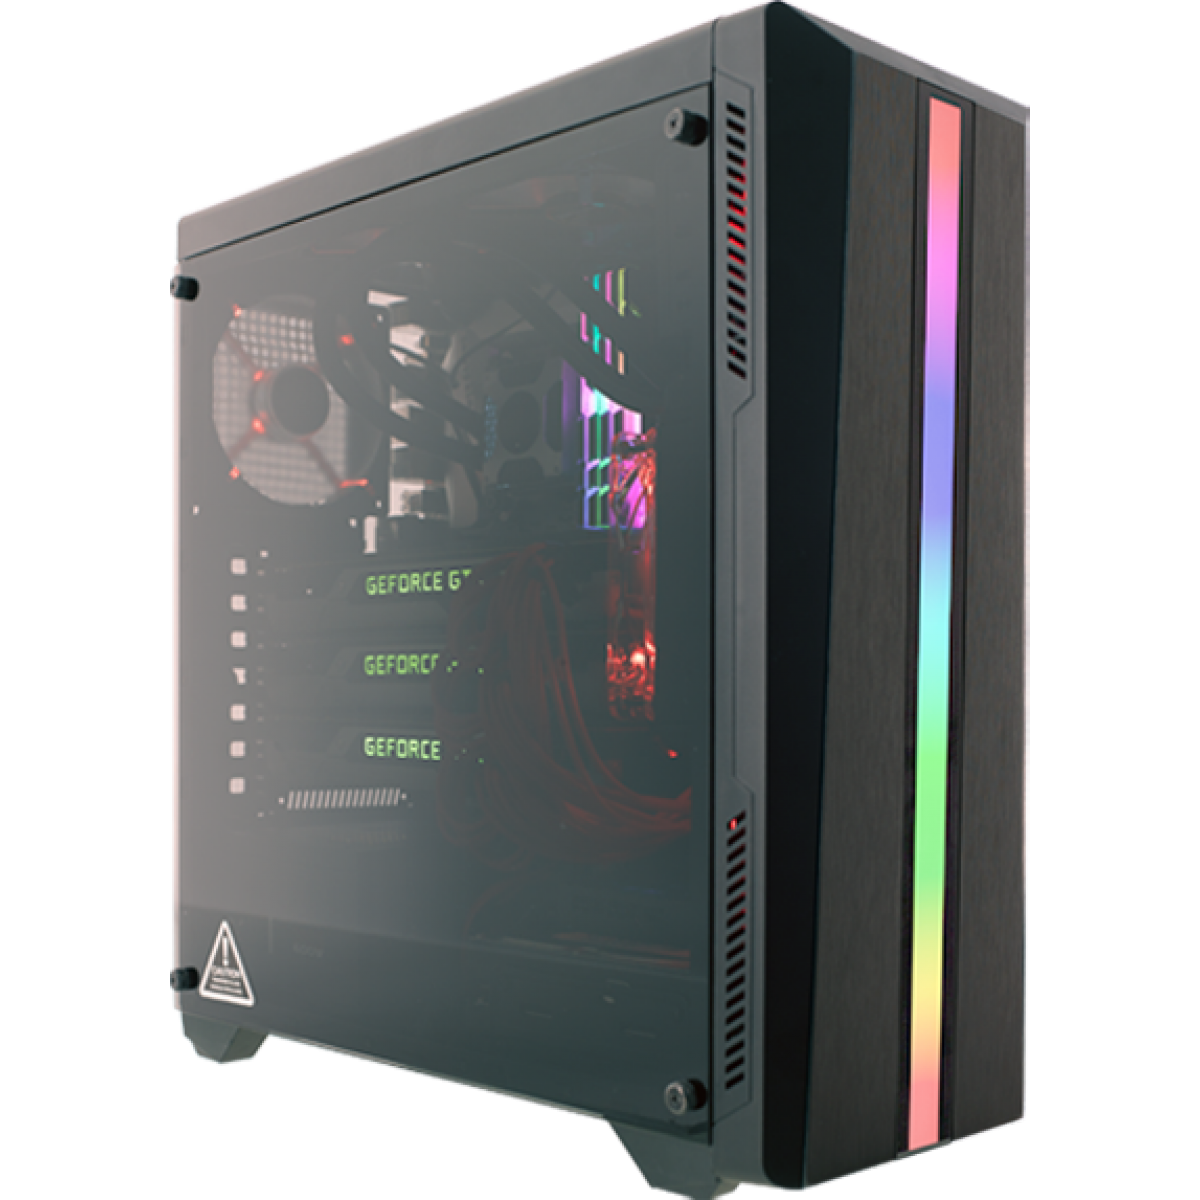 Pc Gamer T-power Special Edition Intel I7 9700K 3.60GHz / GeForce RTX 2080 Ti 11Gb / 8Gb DDR4 / Hd 1Tb / 750W